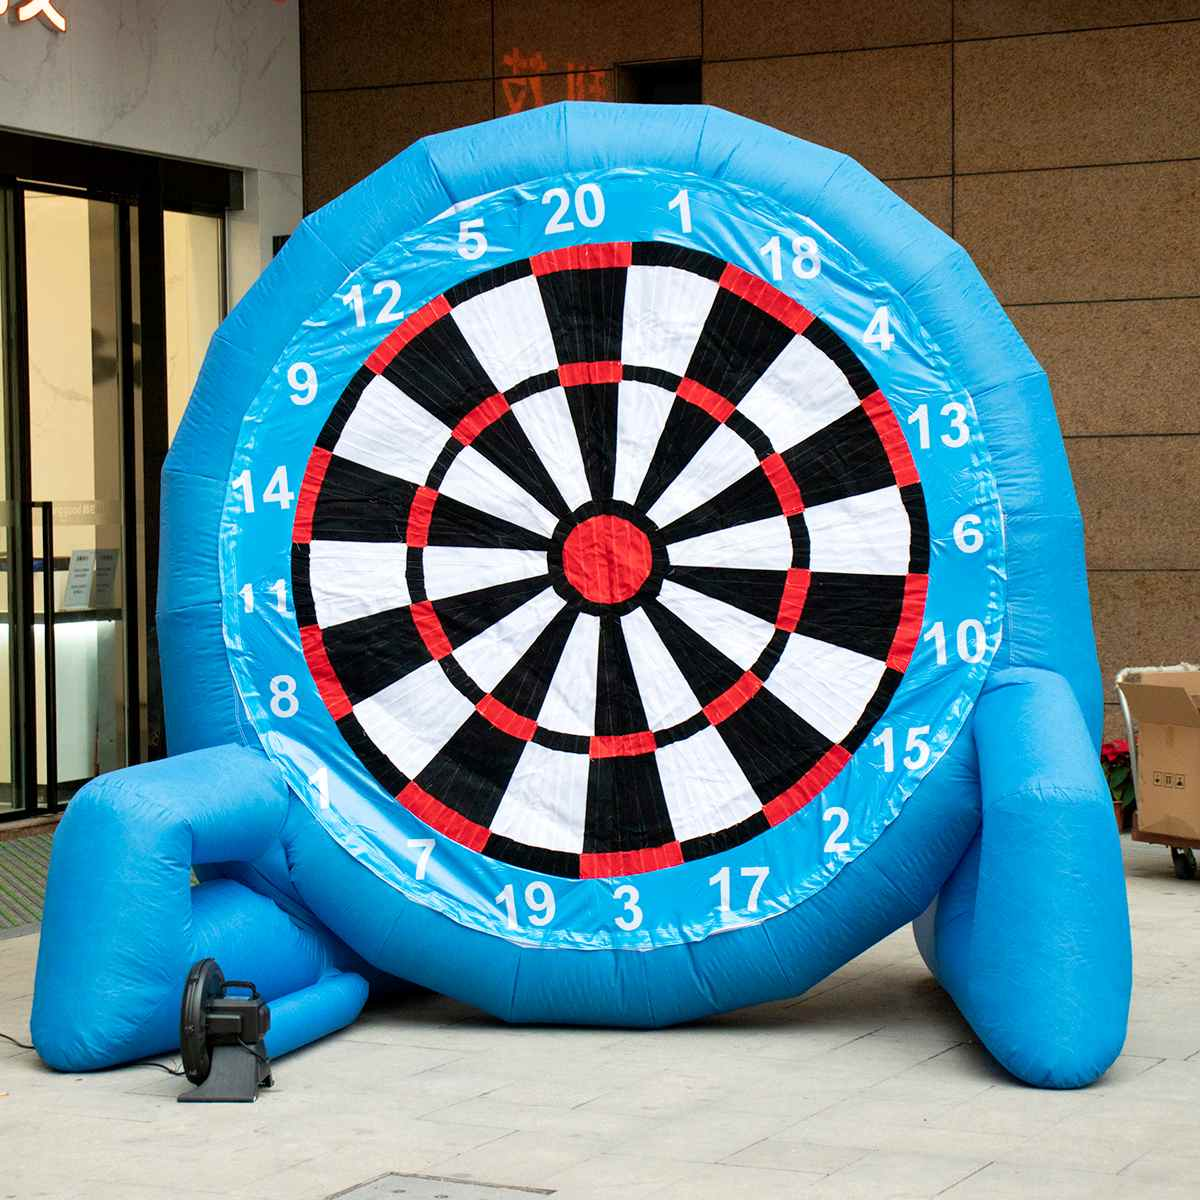 3 Meter 9.8ft High Giant Inflatable Football Dart Board Soccer Bouncer Outdoor Sport Games Inflatable Dart Board With Air Blower3 Meter 9.8ft High Giant Inflatable Football Dart Board Soccer Bouncer Outdoor Sport Games Inflatable Dart Board With Air Blower